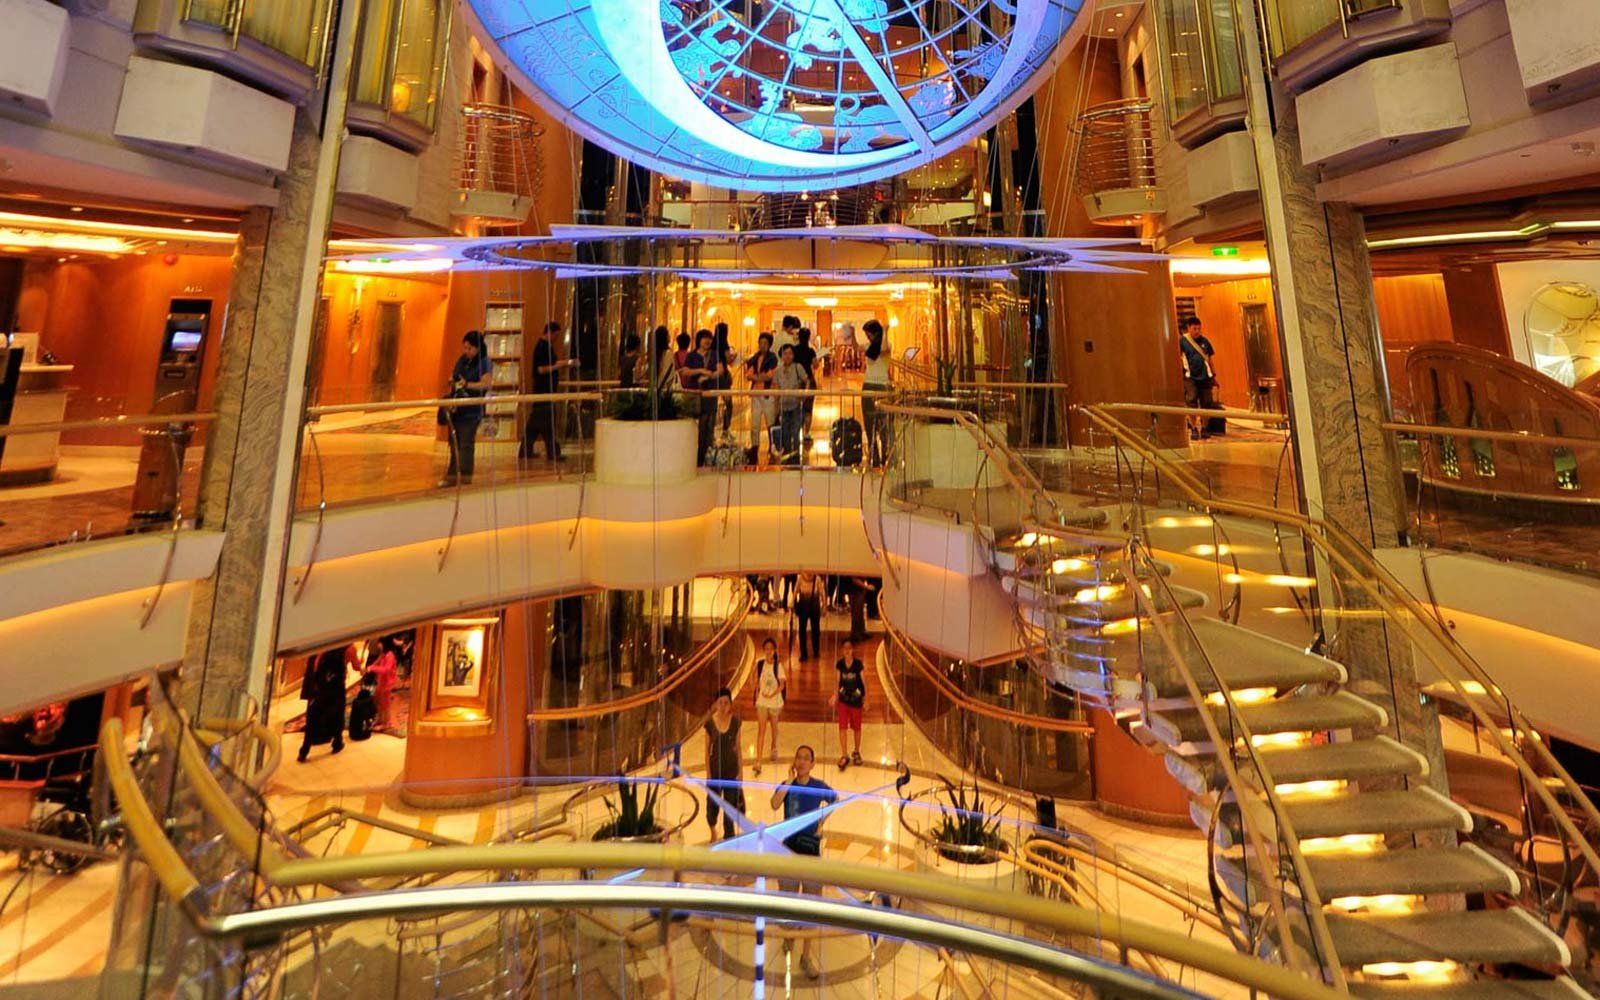 Royal Caribbean Voyager of the Seas